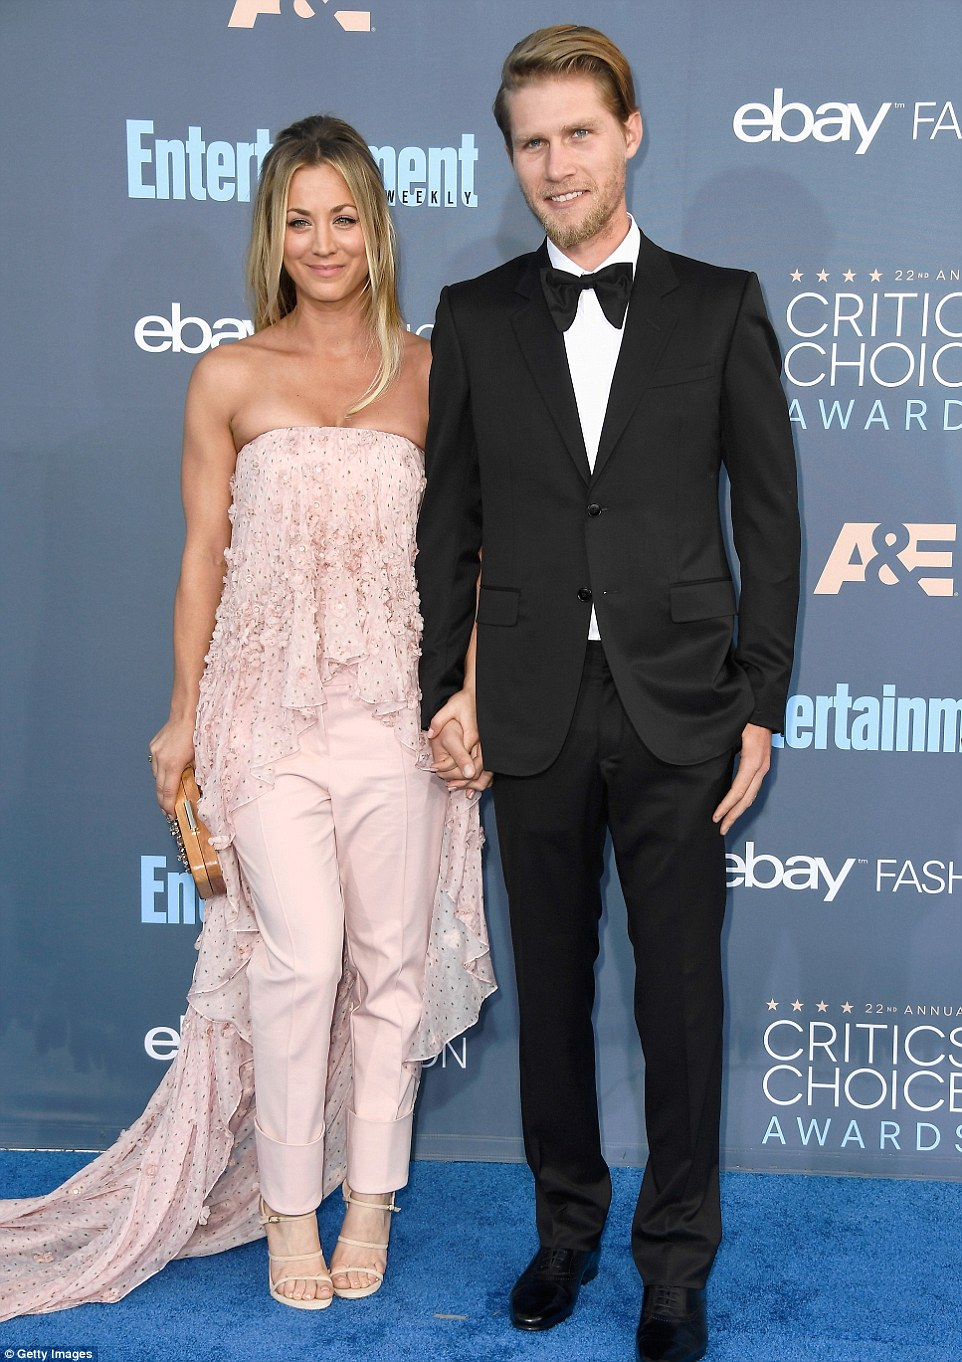 Hand-in-hand: The actress arrived with her boyfriend Karl Cook